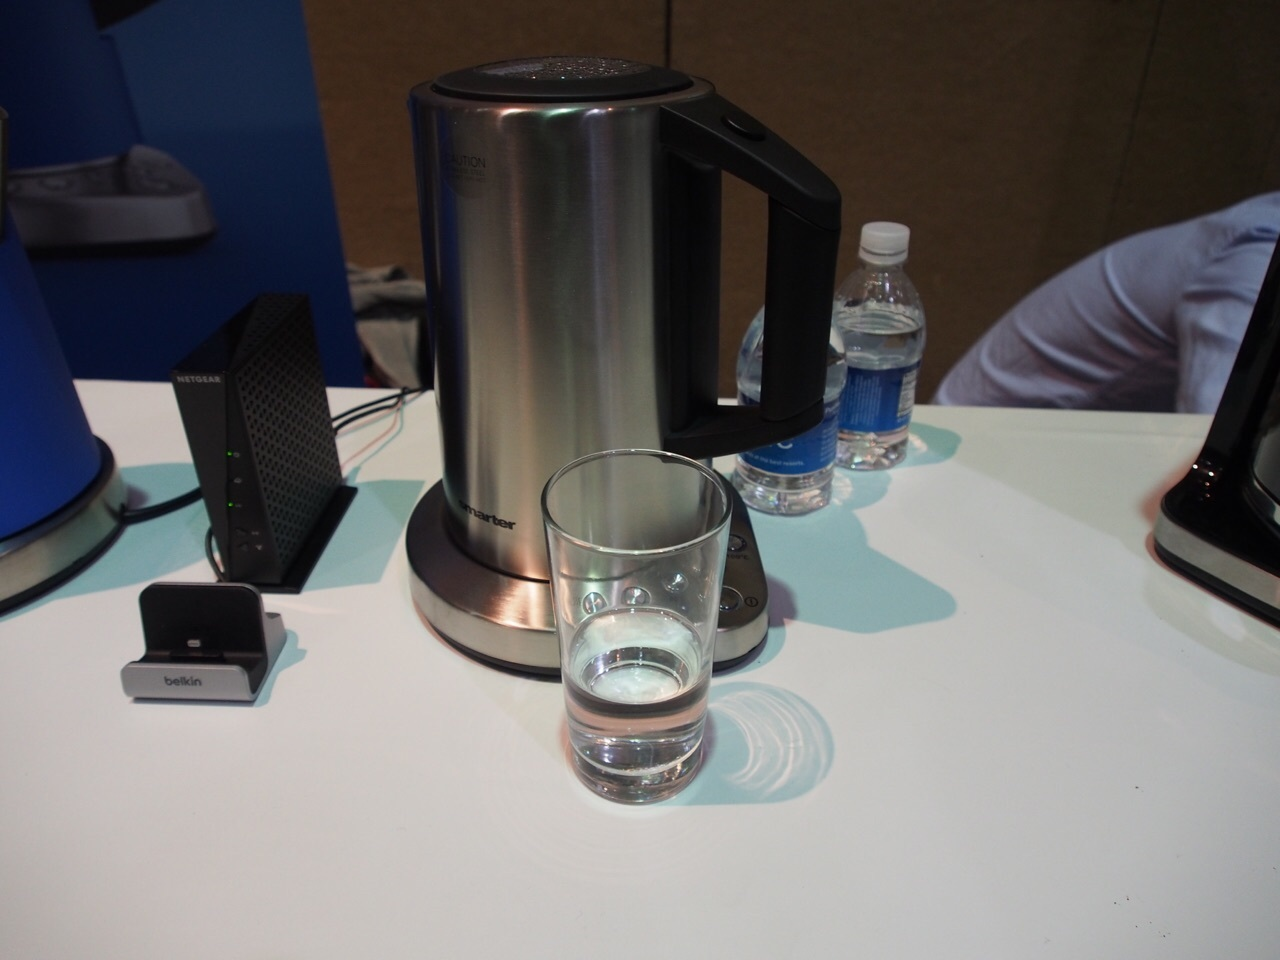 Innovations of an exhibition of household innovations of CES 2015